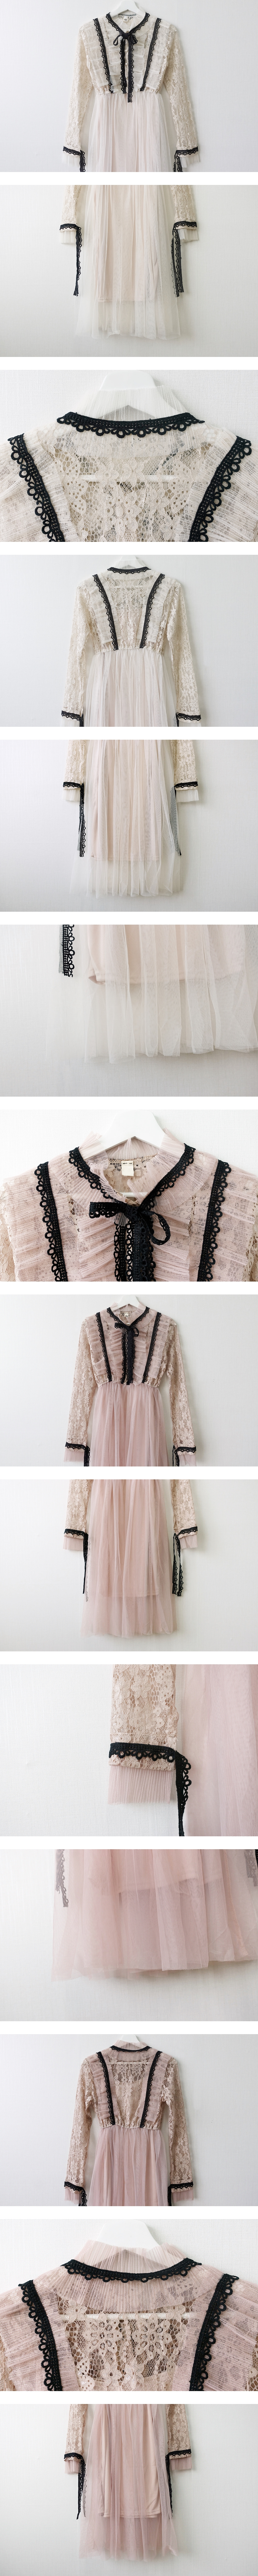 Lace ribbon long dress